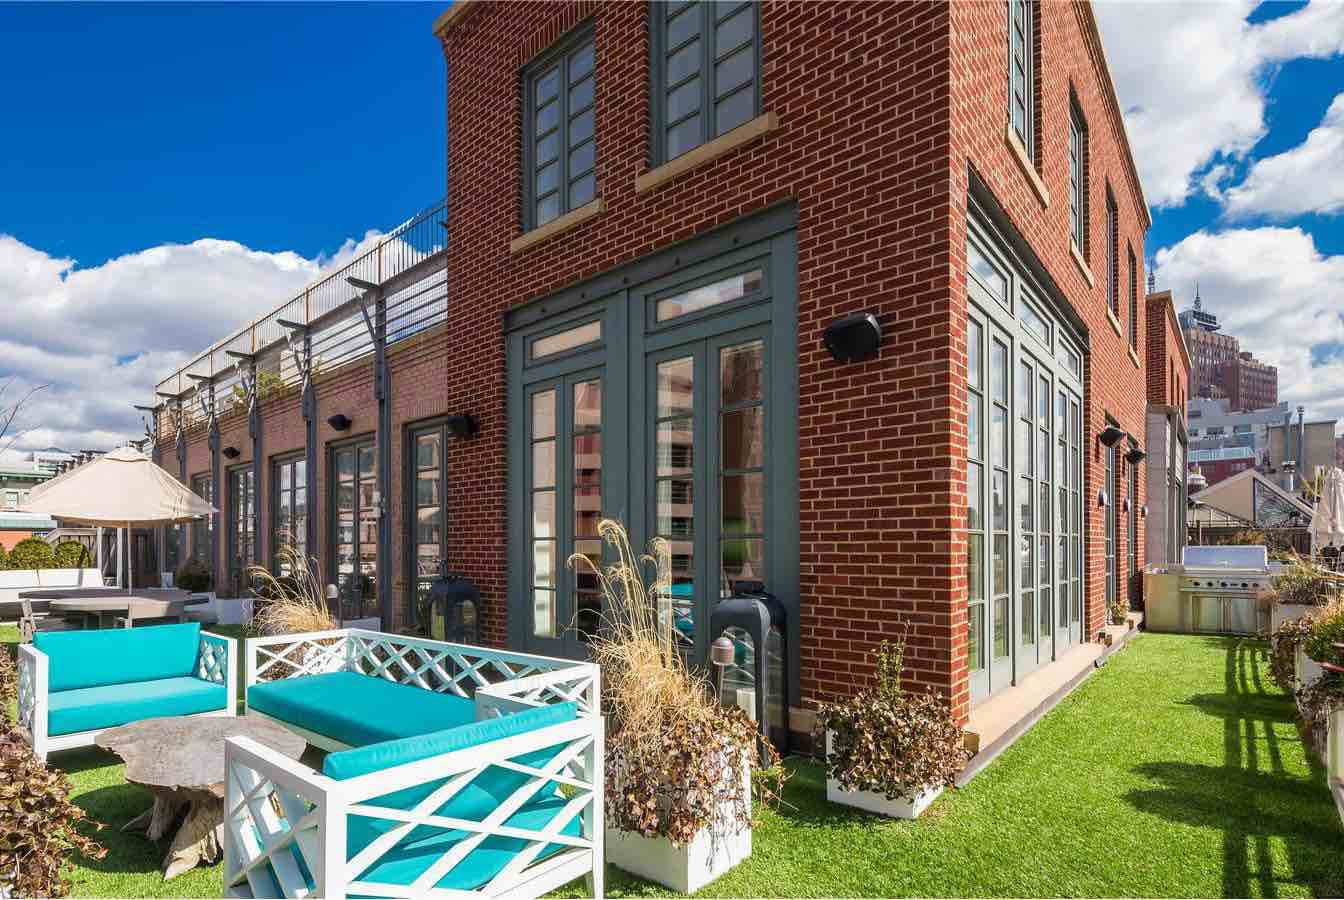 A-Penthouse-with-a-Backyard-in-Tribeca-02